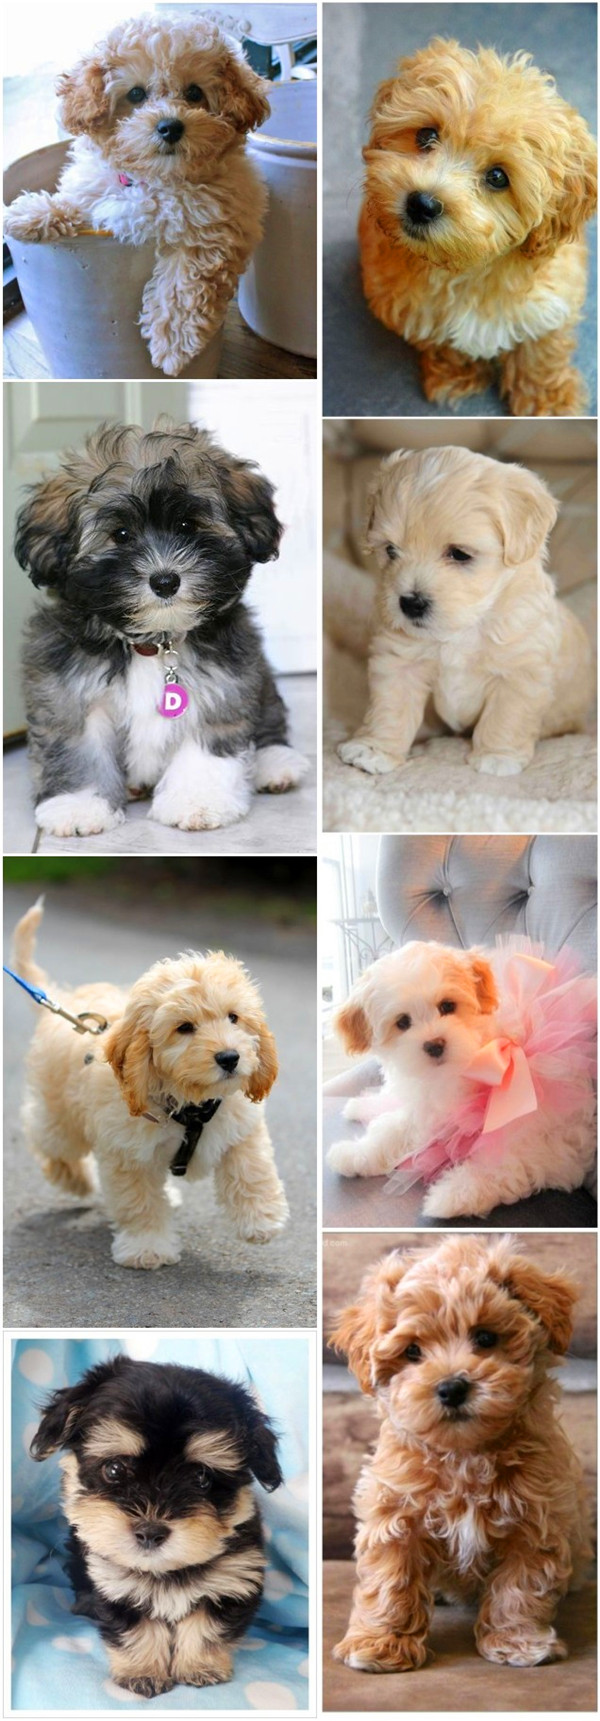 Tiny Toy Dog Breeds : Top cutest small dog breeds fallinpets